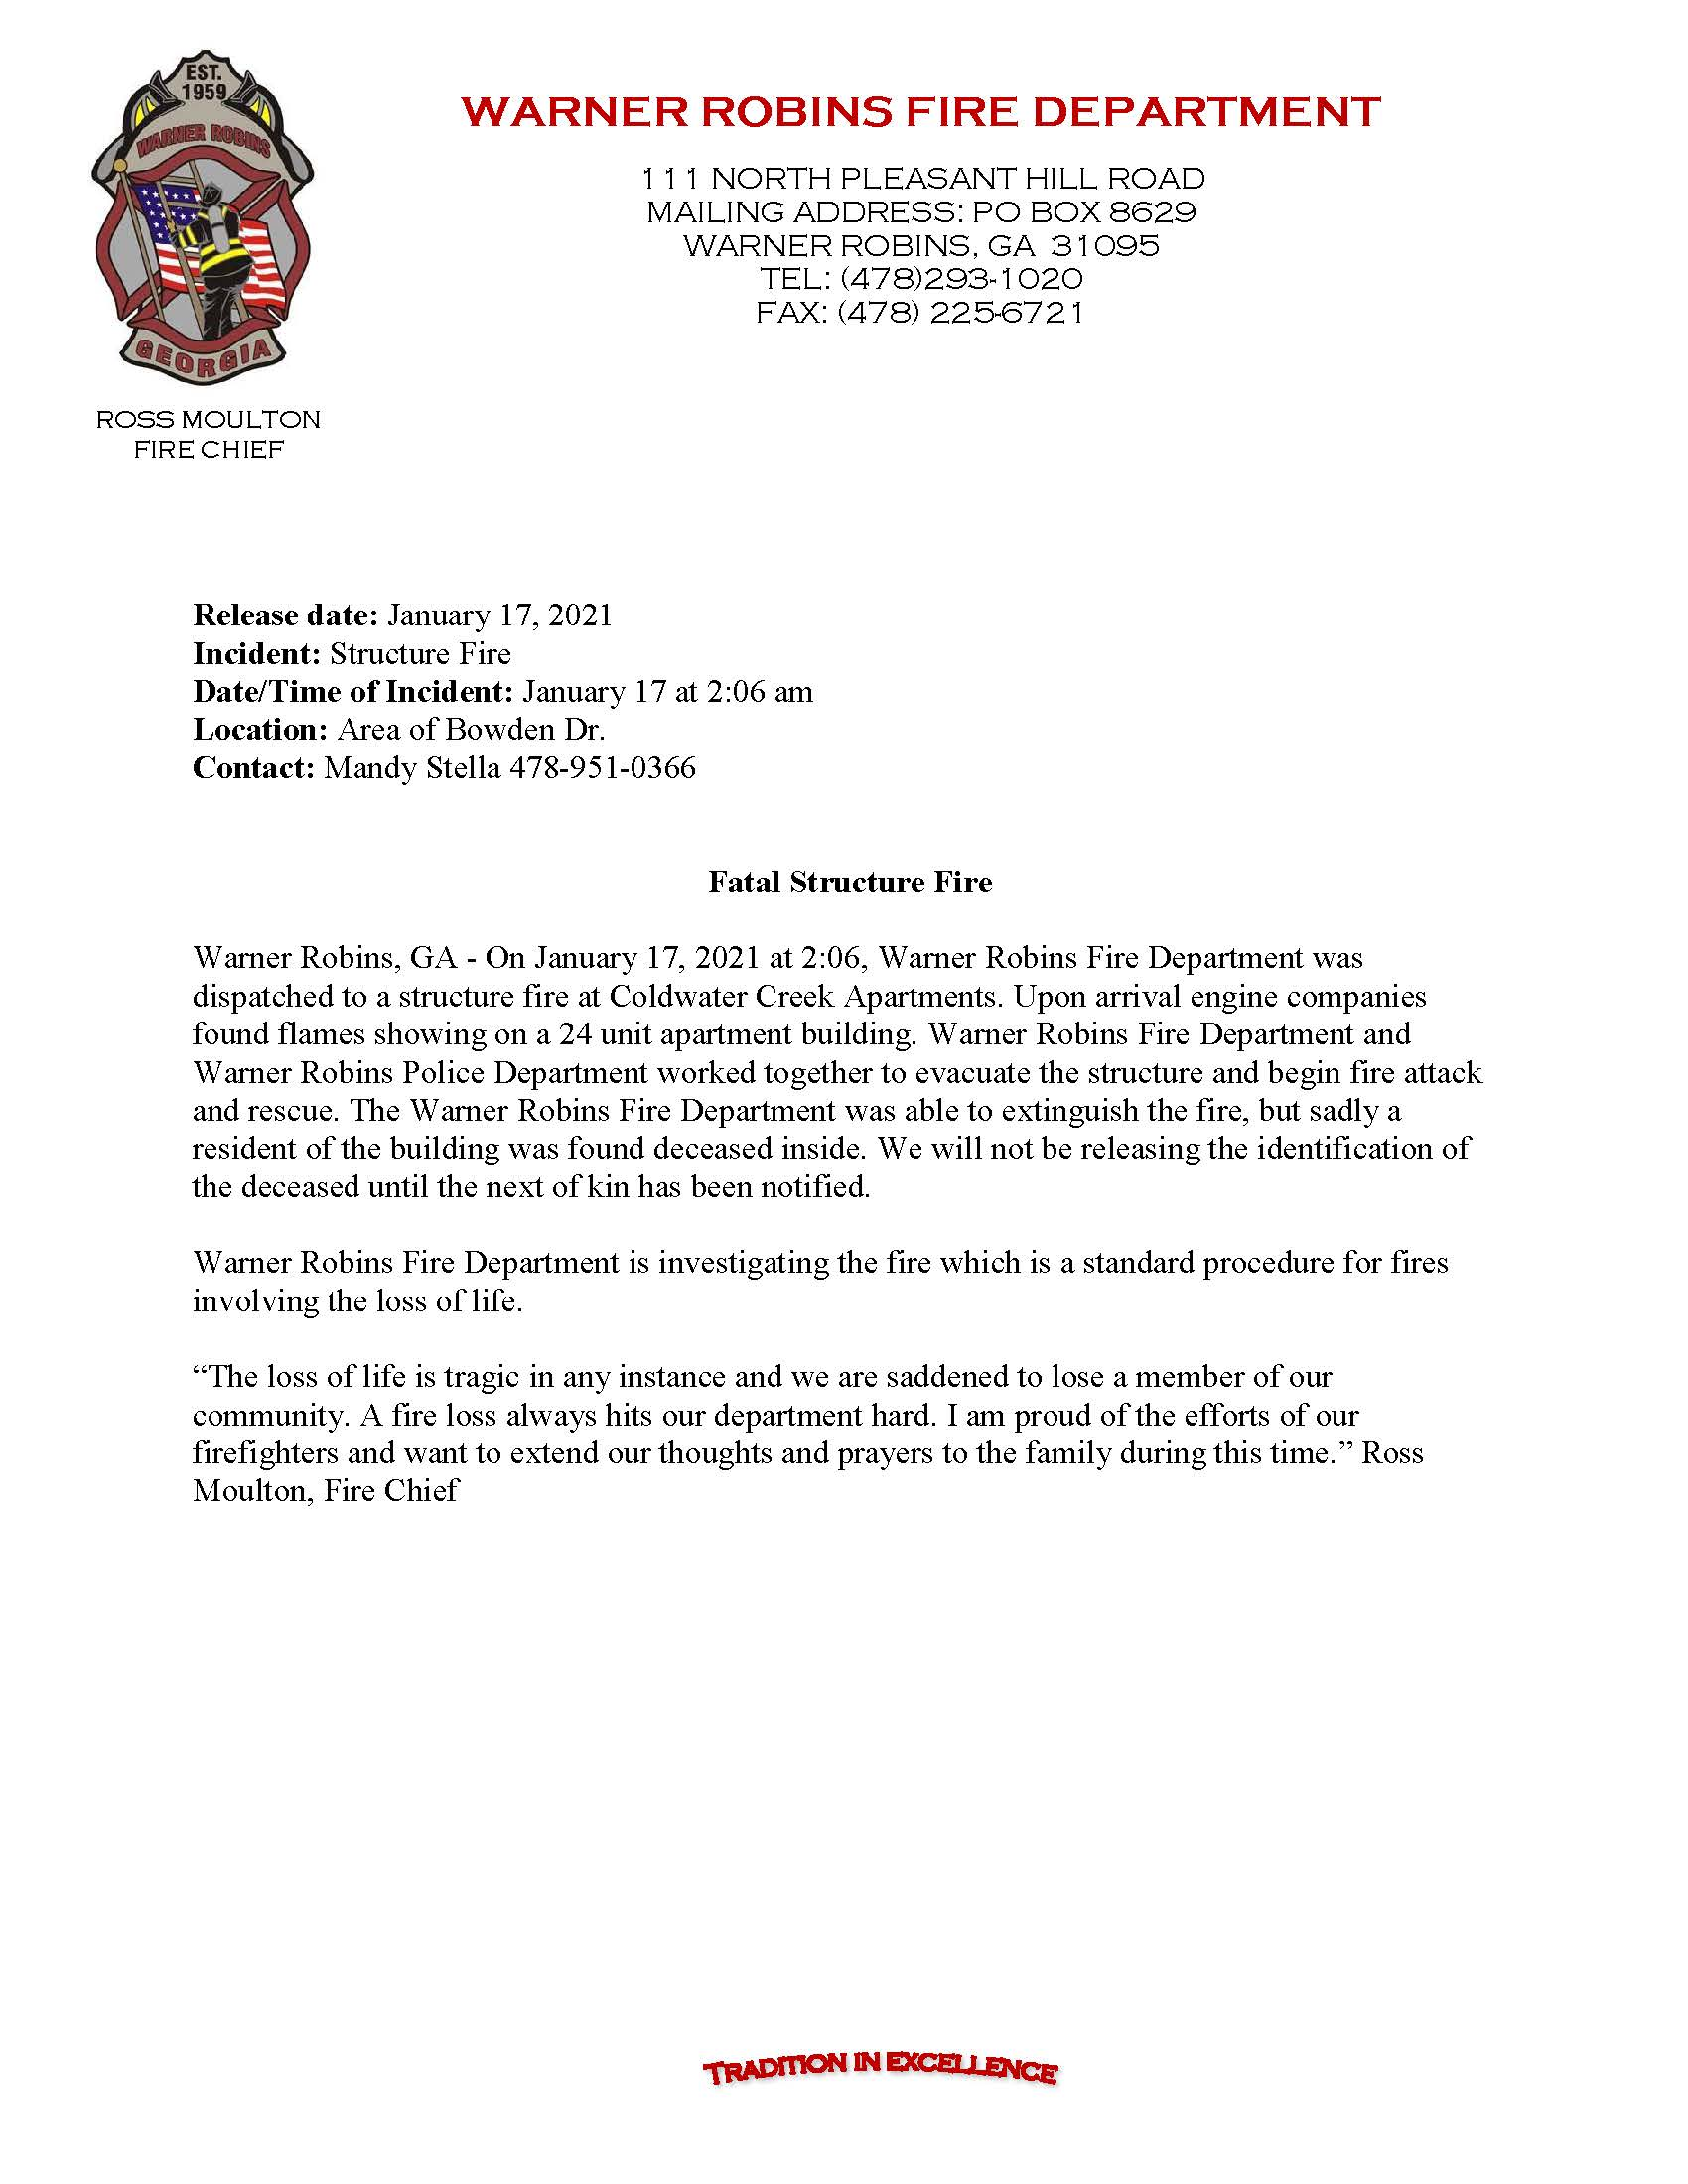 Structure Fire Fatality 01.17.2021